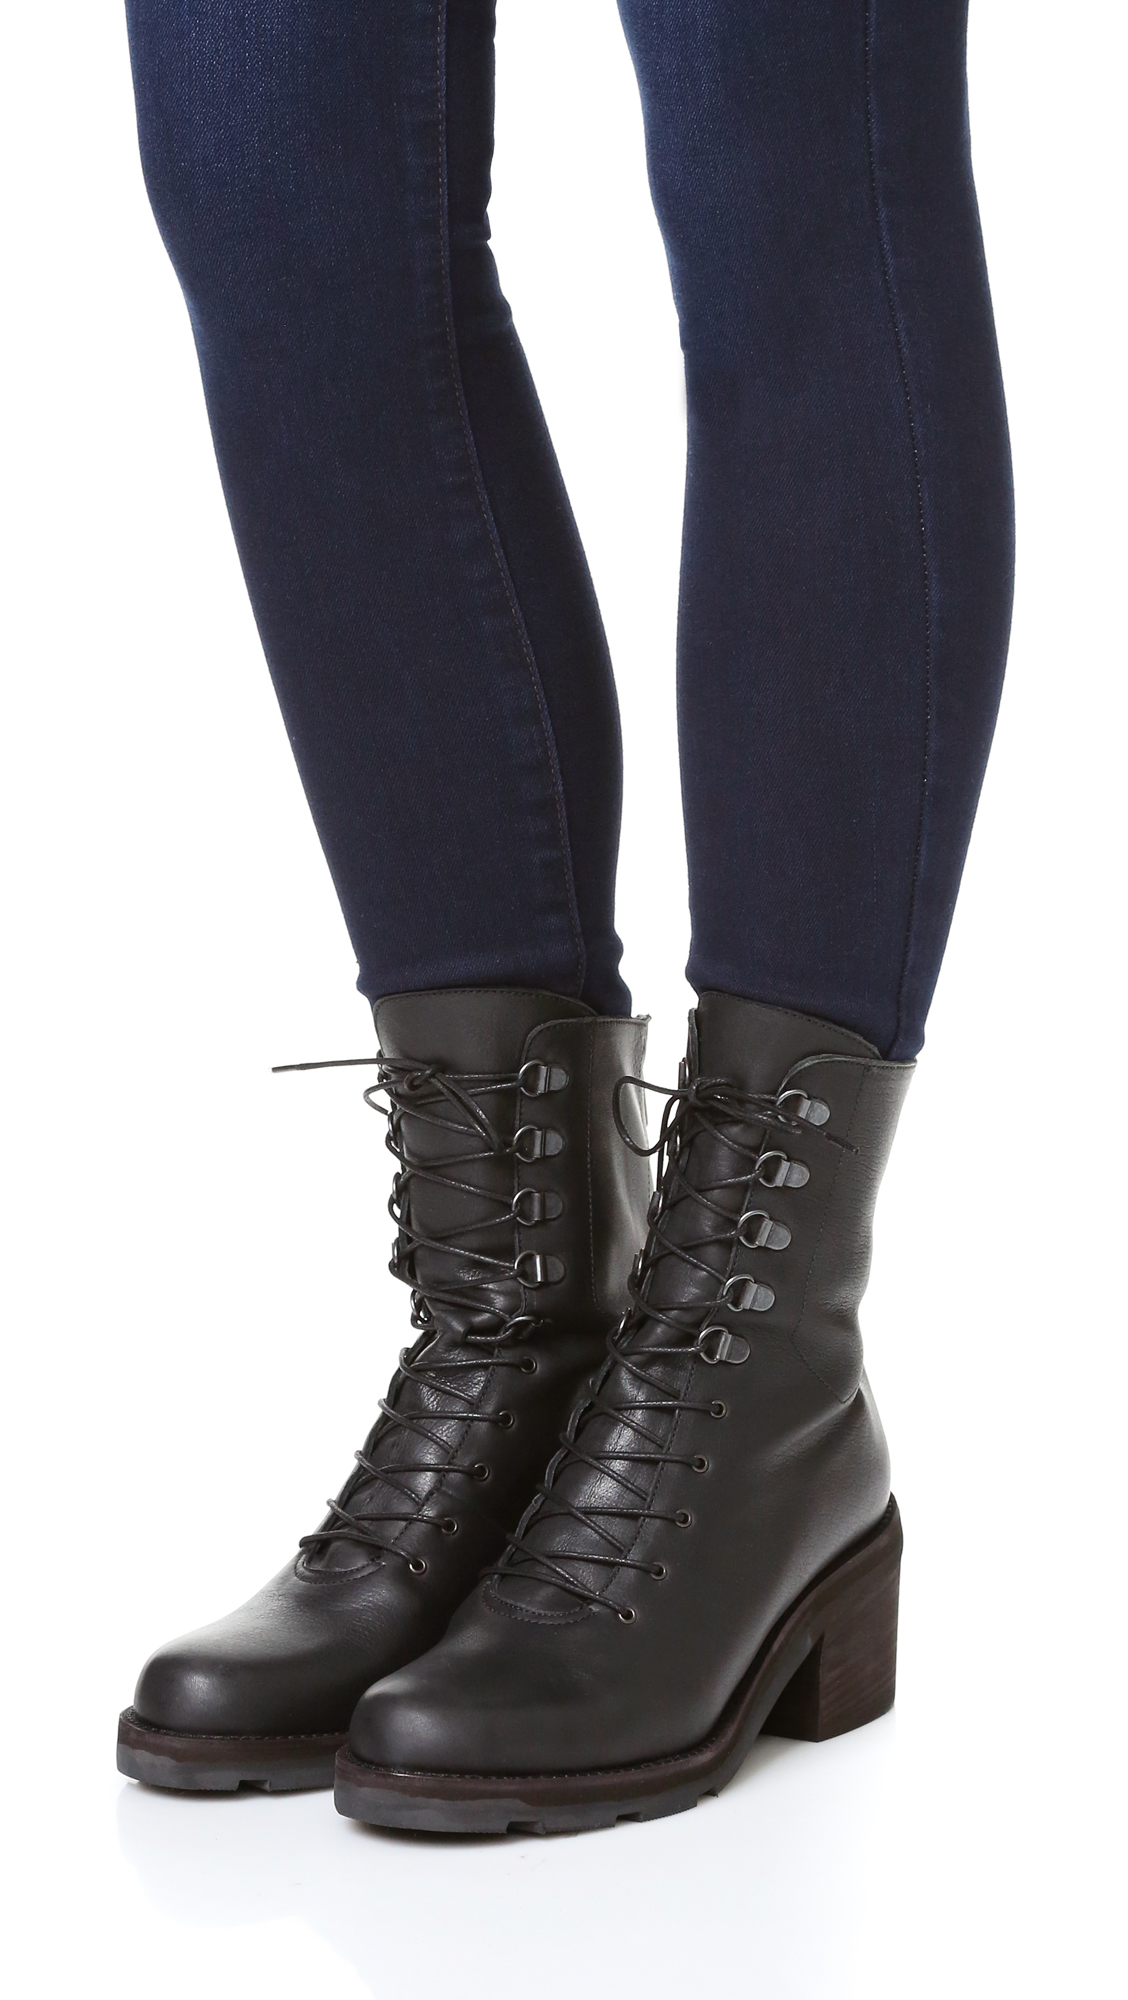 LD Tuttle The Below Mid Calf Leather Boots hLrcRFrg3T